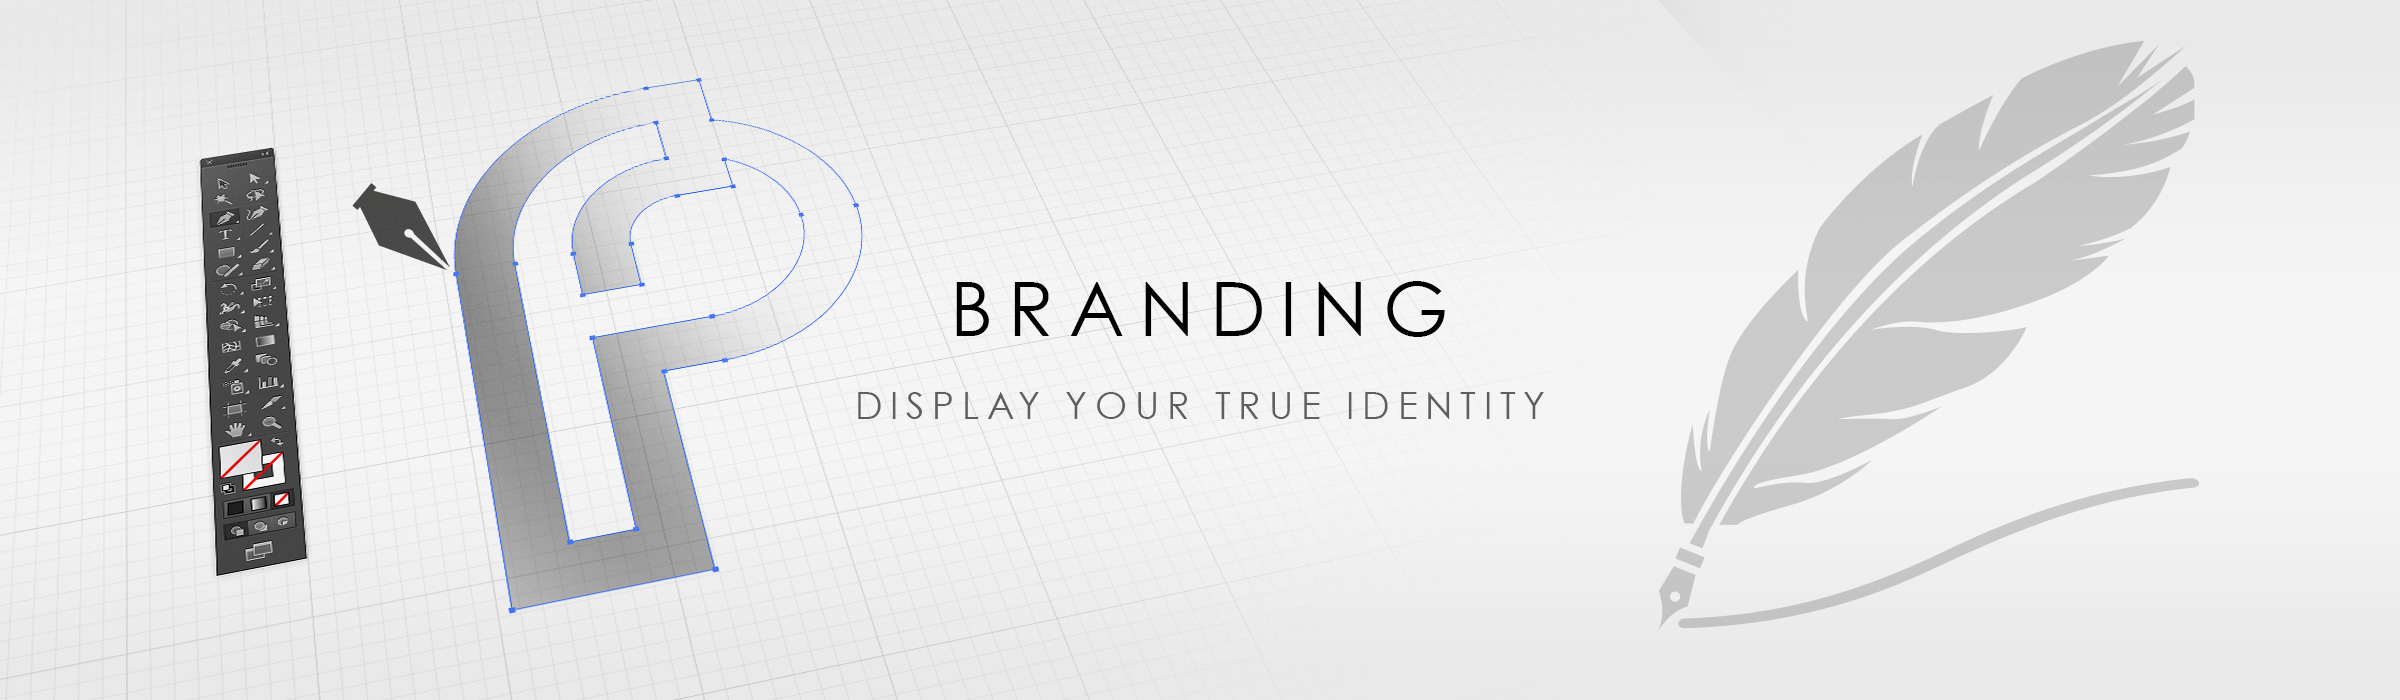 Banner - Branding, display your true identity